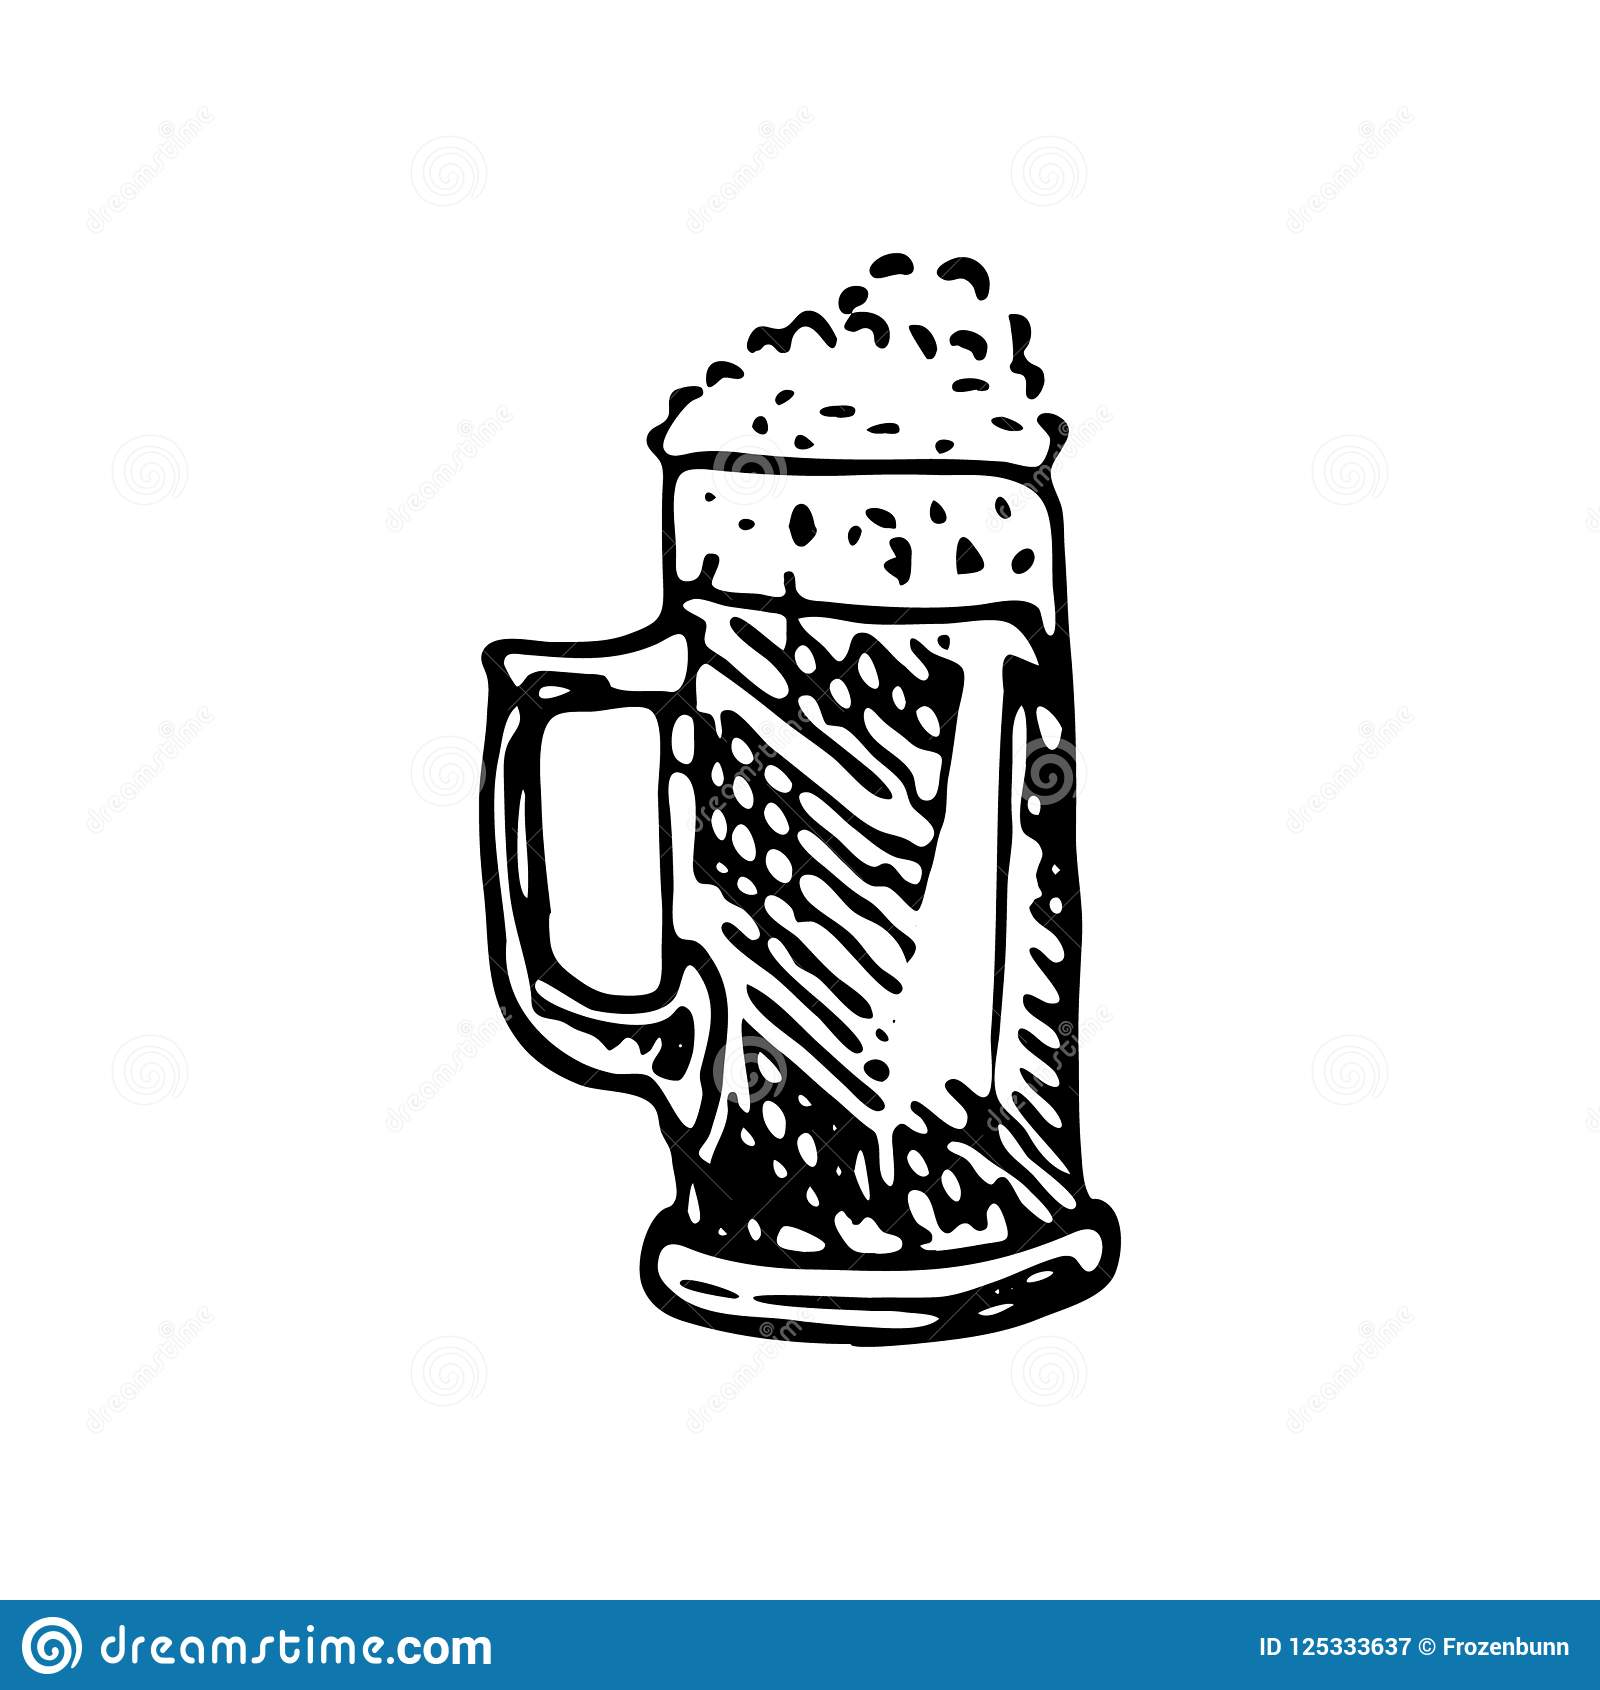 Hand Drawn Beer Mug Doodle Sketch Food And Drink Icon Decoration Element Isolated On White Background Vector Illustration Stock Vector Illustration Of Doodle Froth 125333637